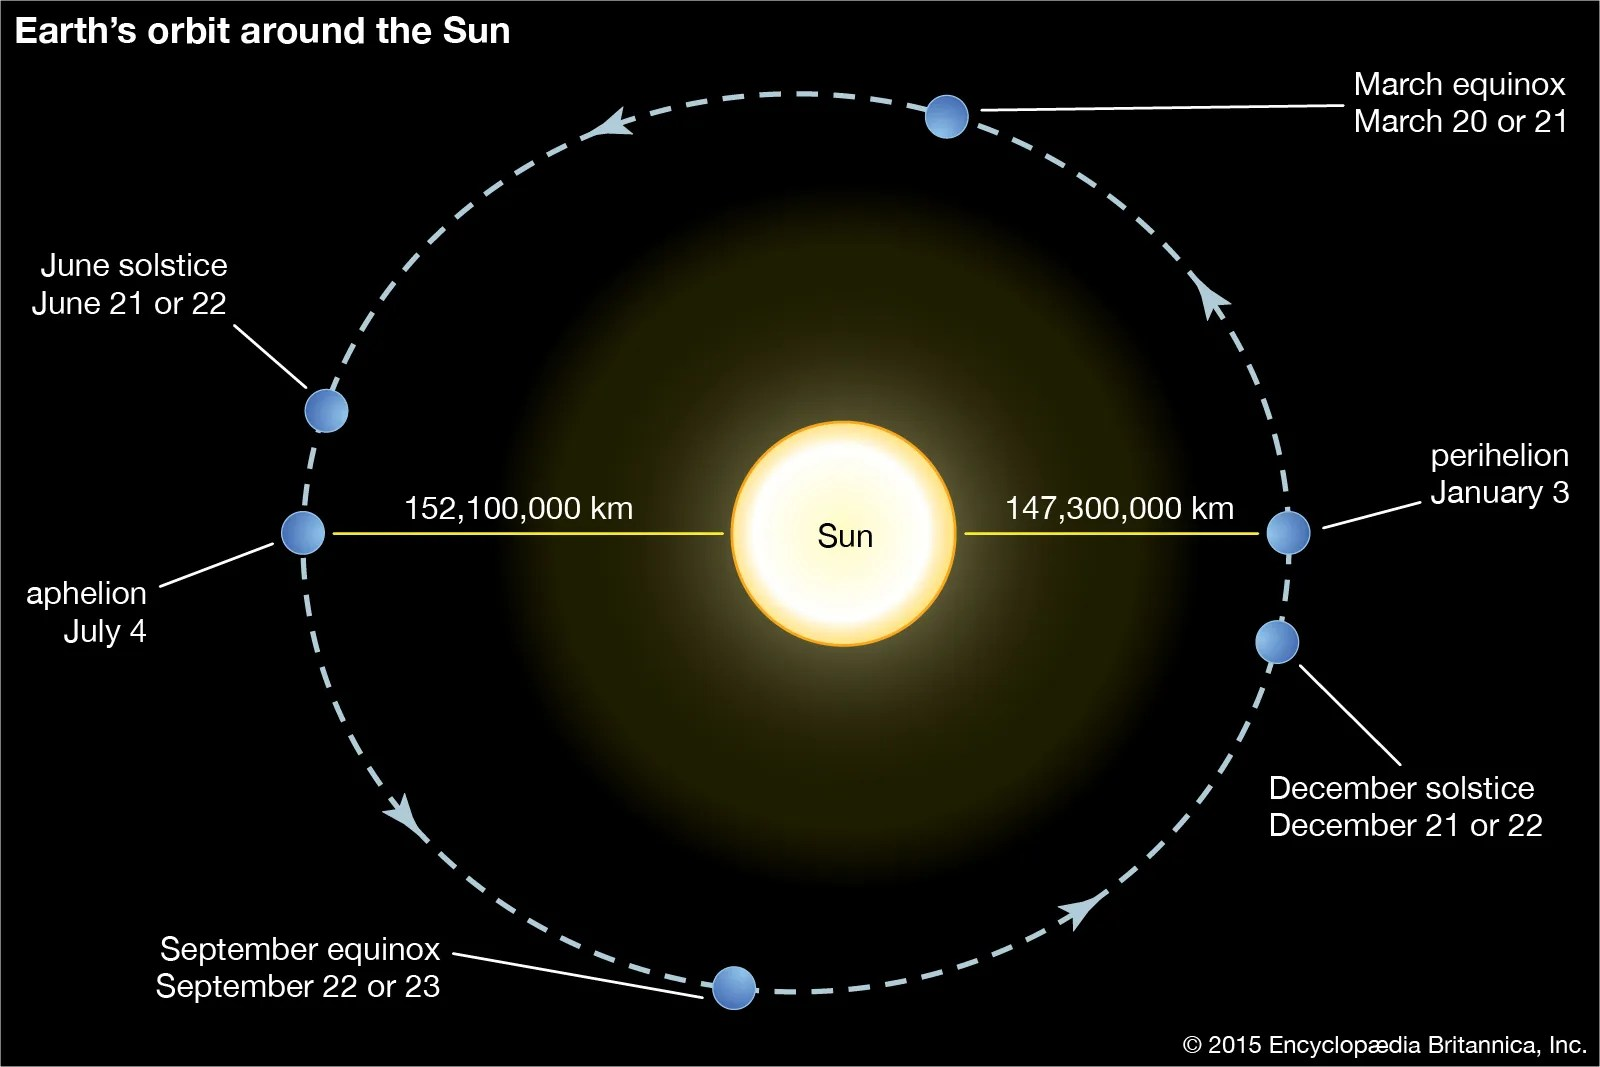 https://i1.wp.com/cdn.britannica.com/20/151220-050-240A2838/Earth-orbit-Sun.jpg?ssl=1